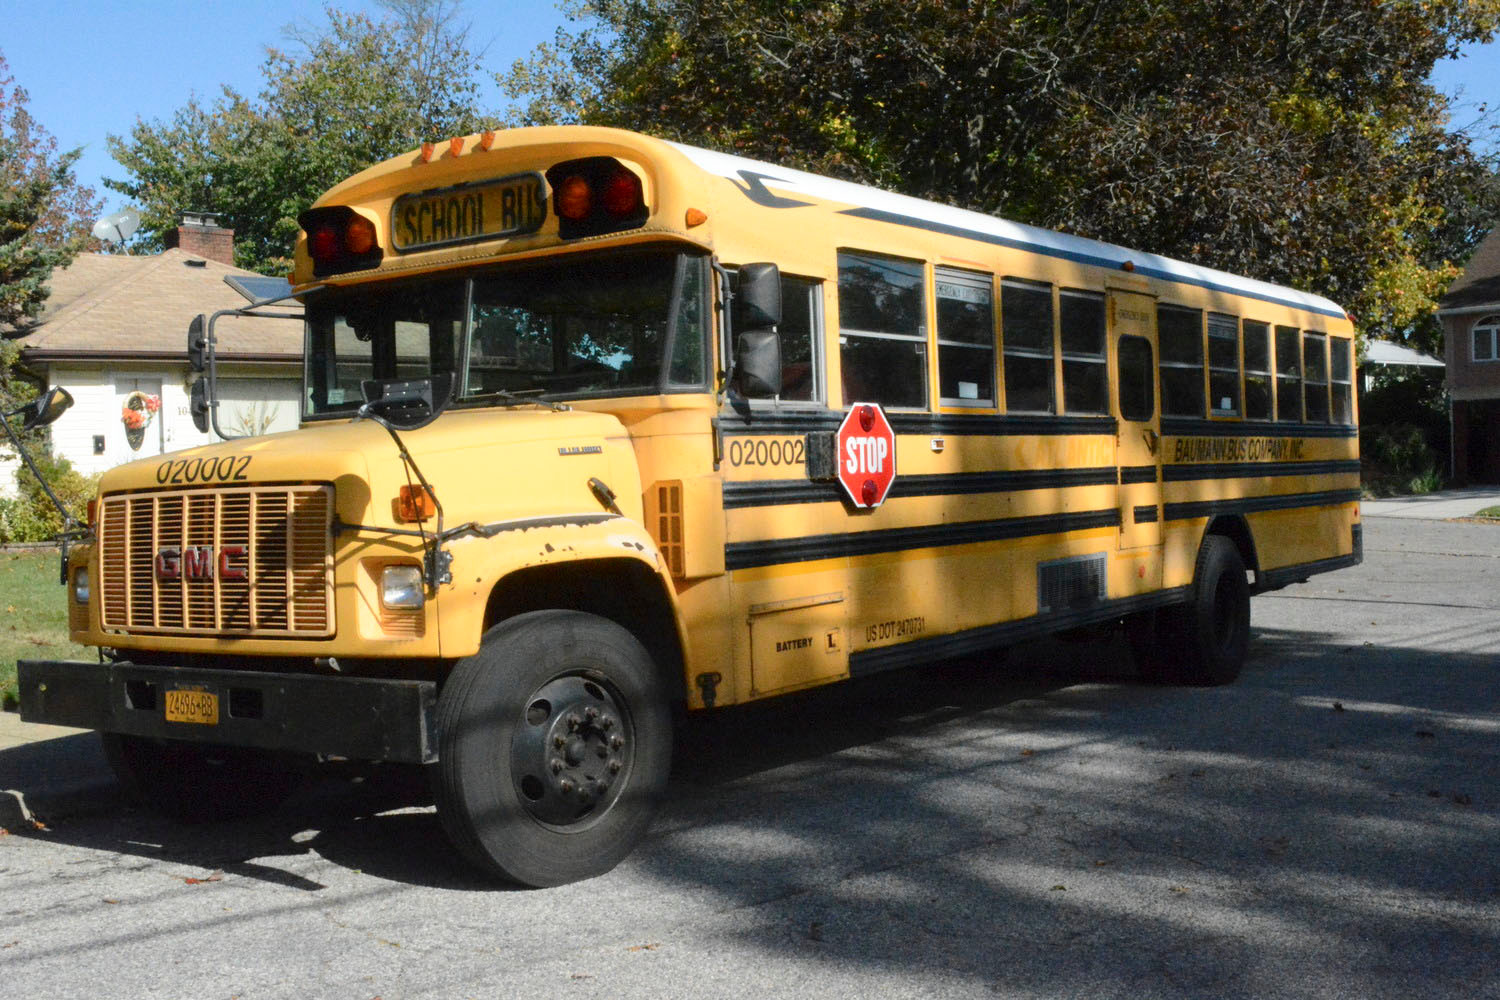 baumann bus company Rockville Centre School District renews contract with Baumann Bus ...